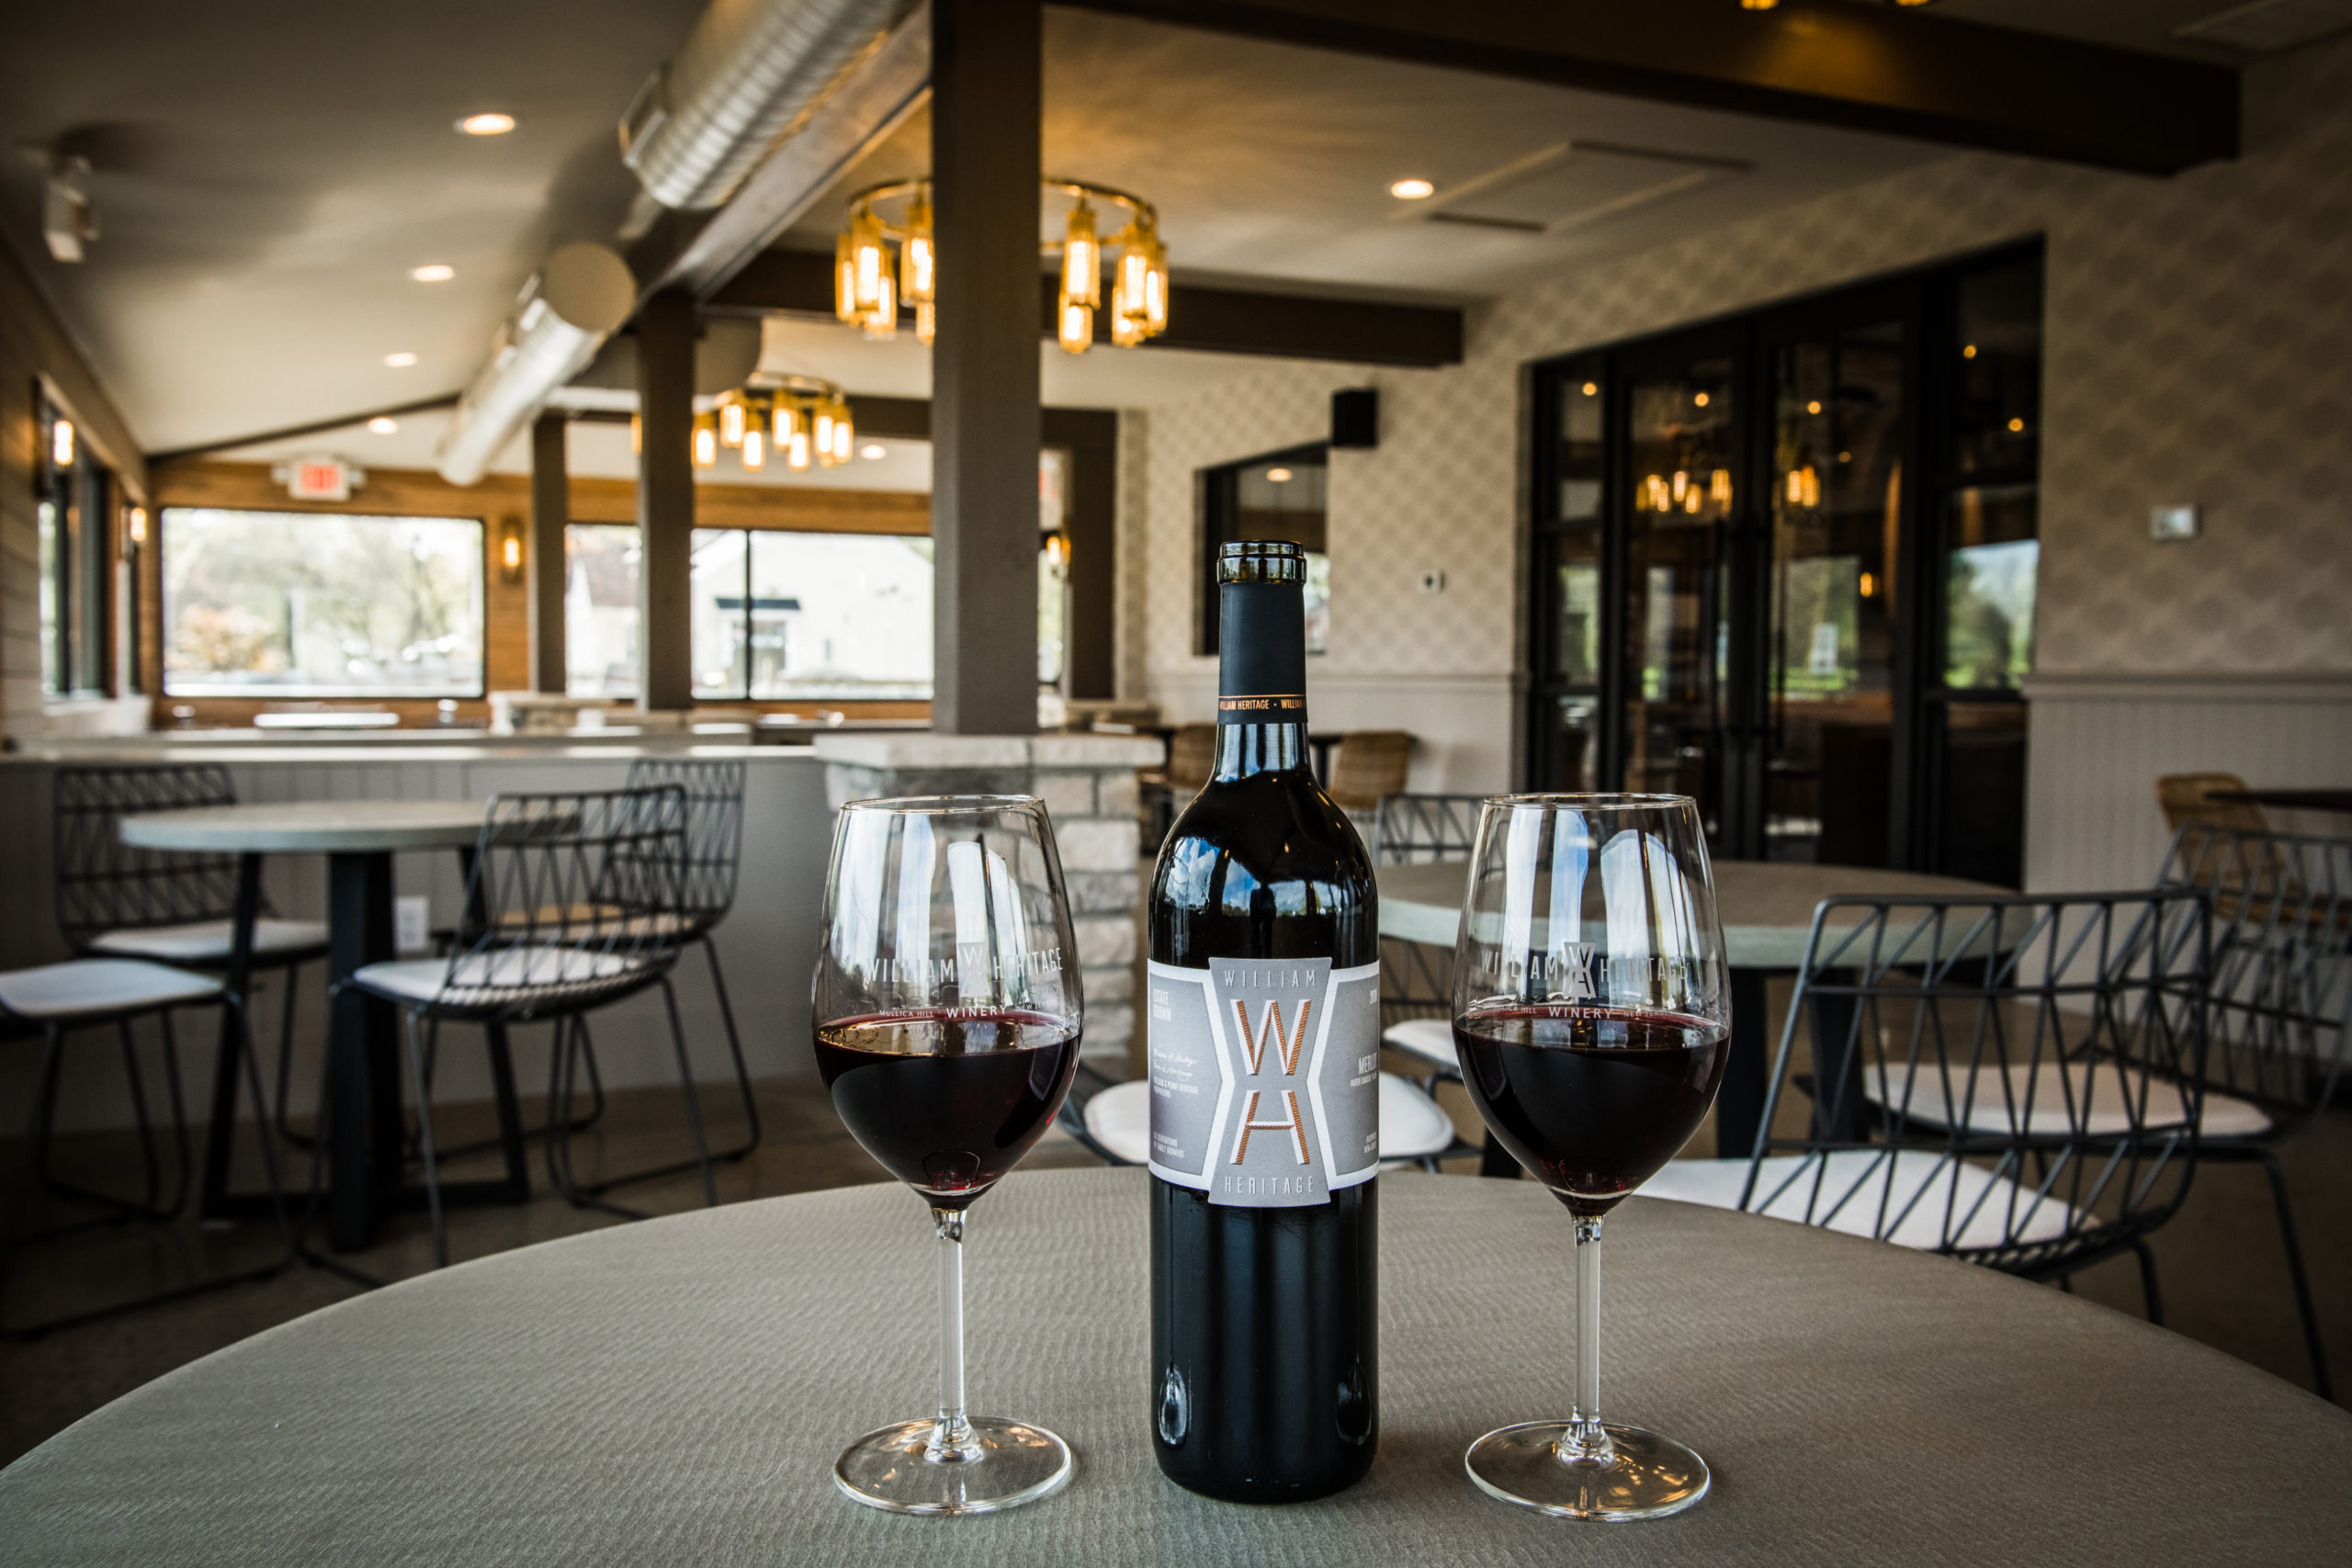 William Heritage Winery Mullica Hill Opens Renovated Indoor Seating Area!